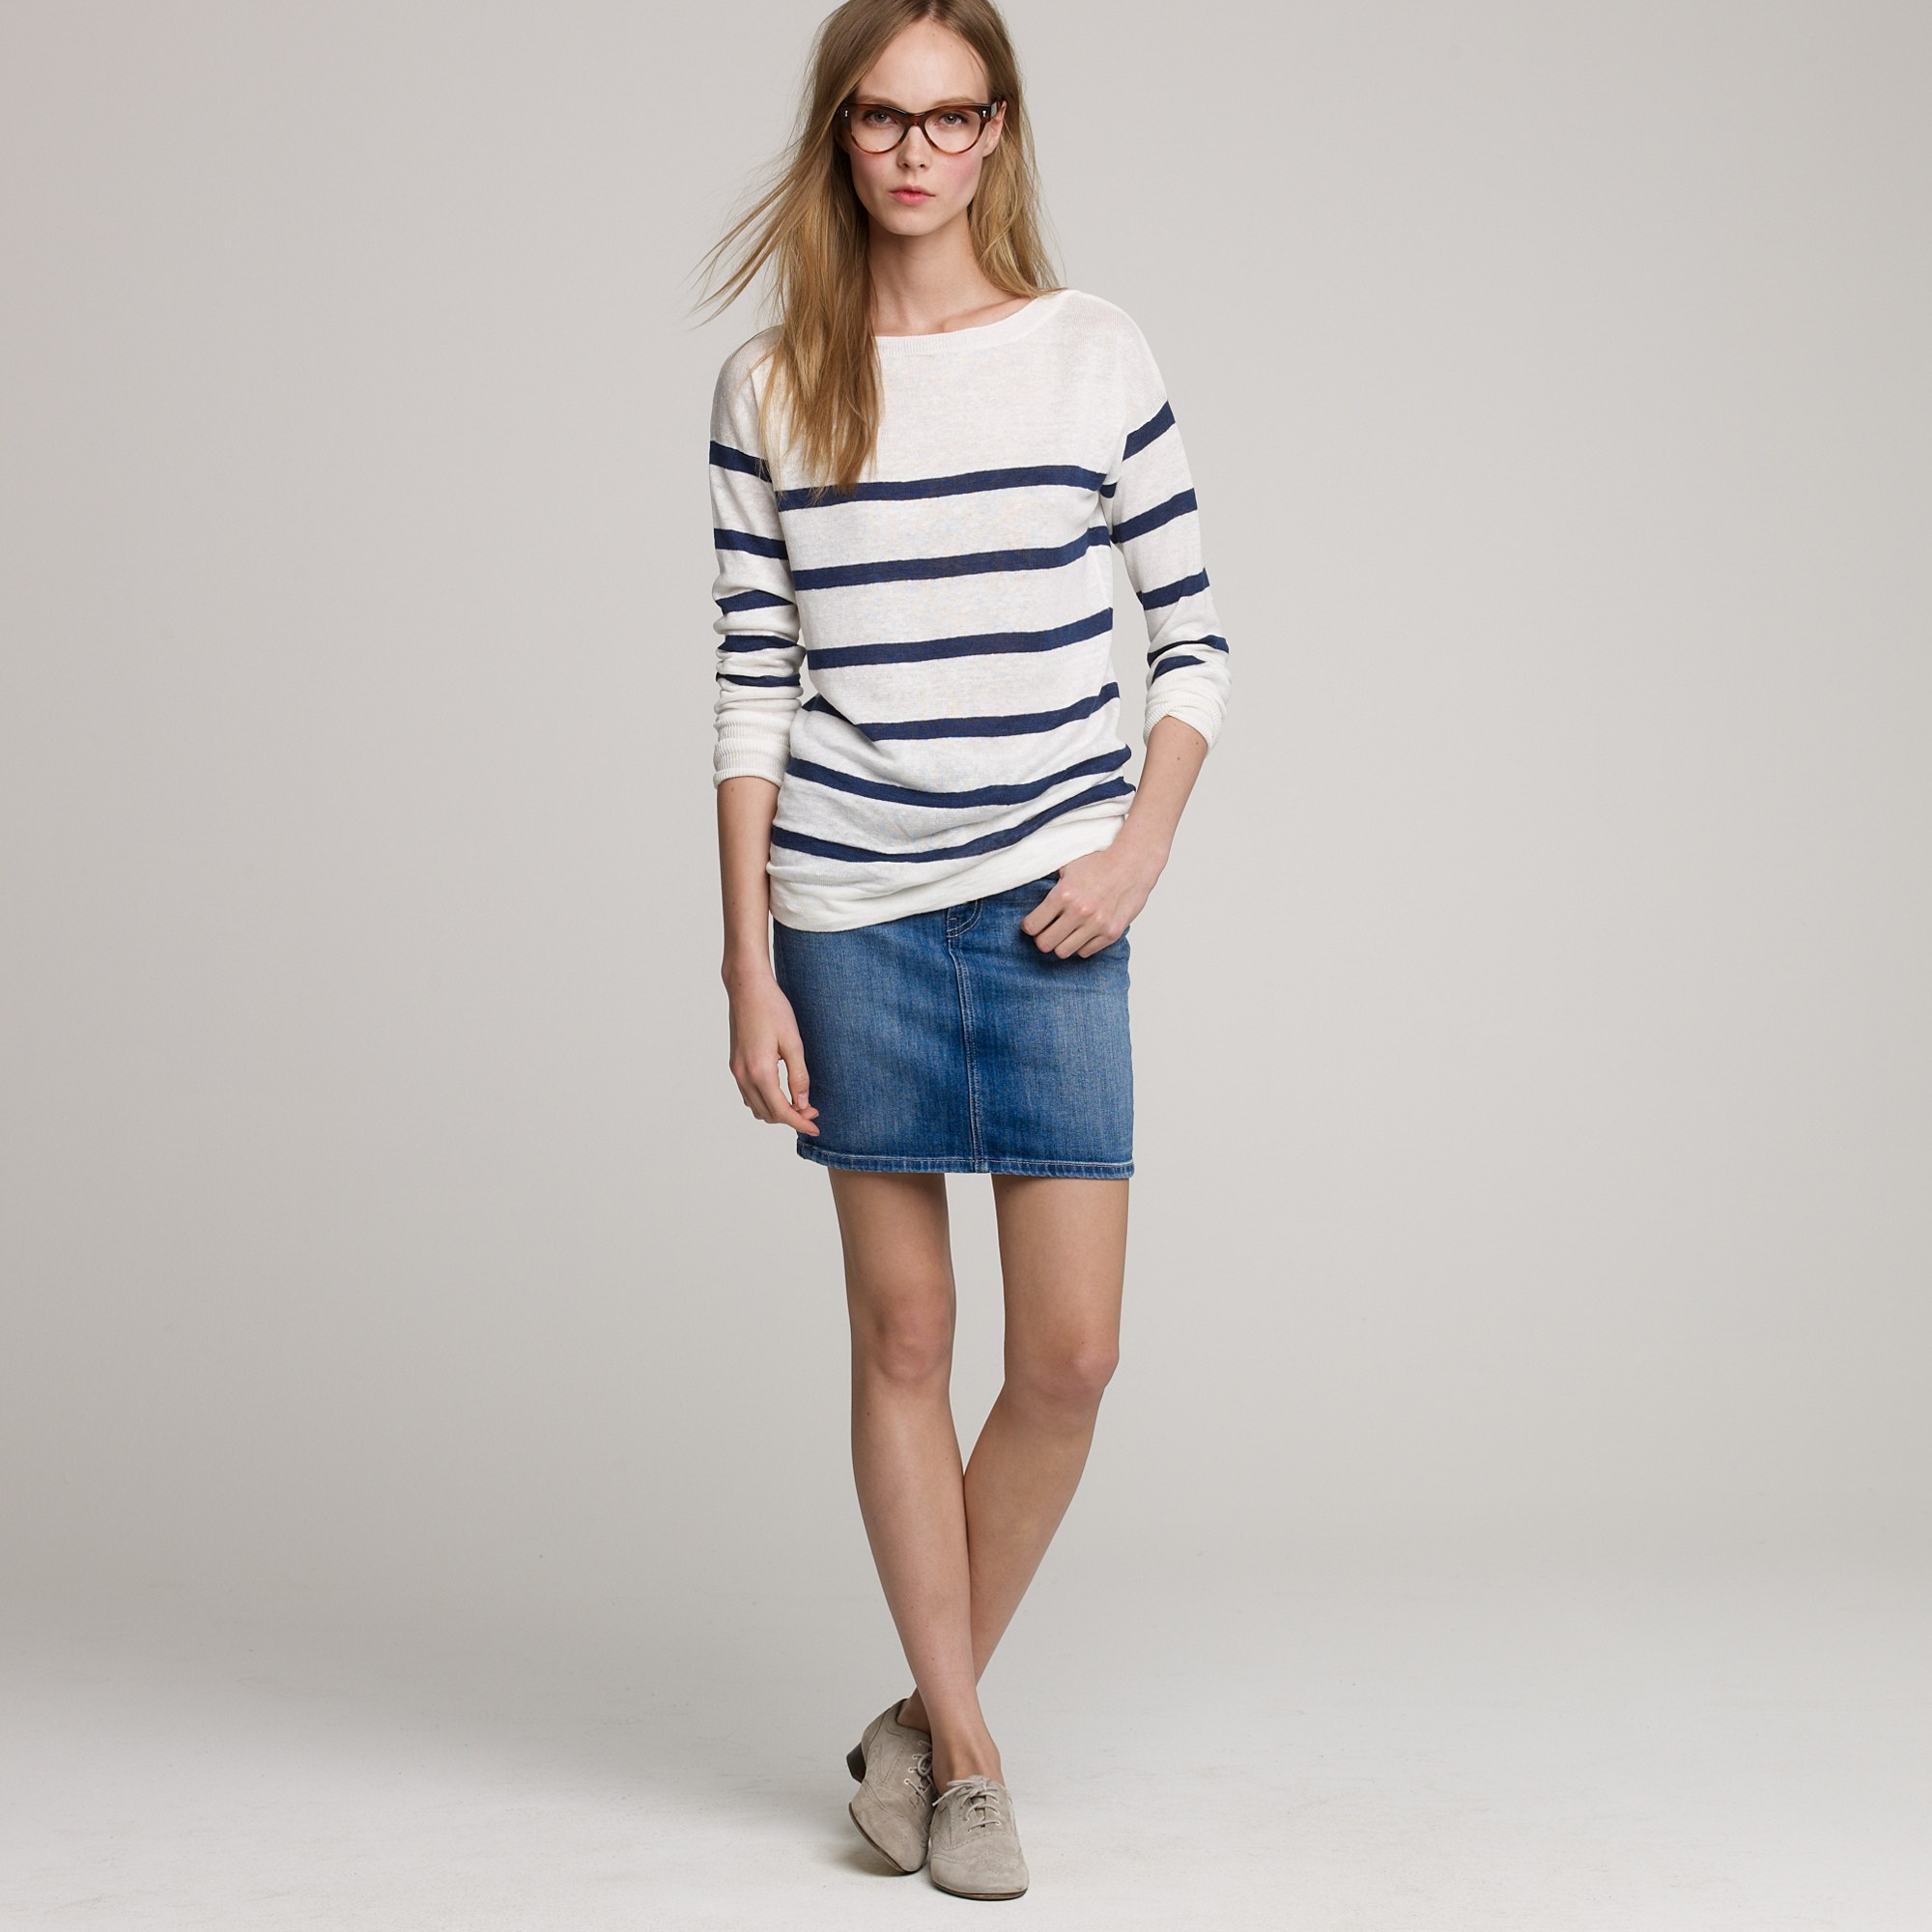 864fef4971 J.Crew Mih Jeans® Delancey Denim Skirt in Blue - Lyst